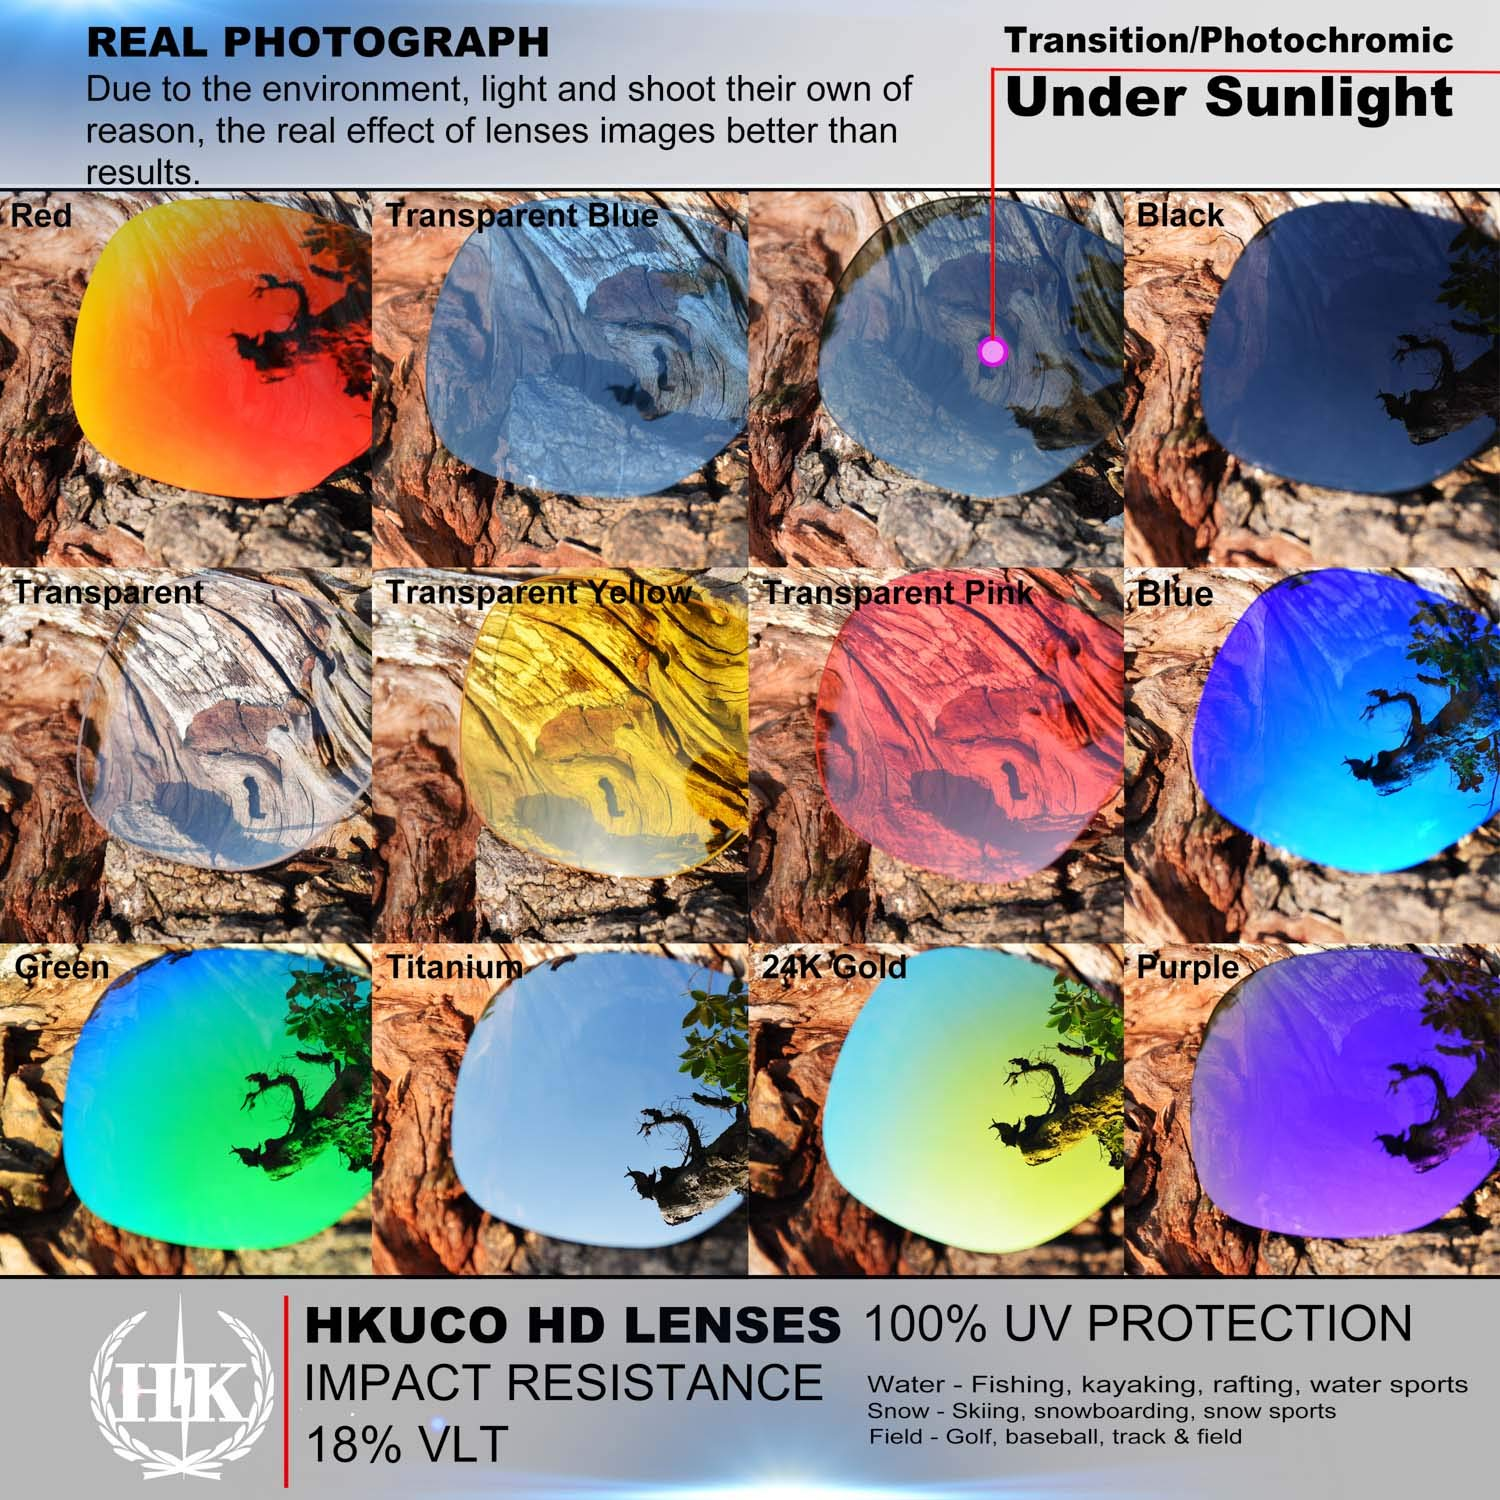 HKUCO Reinforce Replacement Lenses For Rudy Stratofly Red//Blue//Black//24K Gold//Titanium//Emerald Green Sunglasses